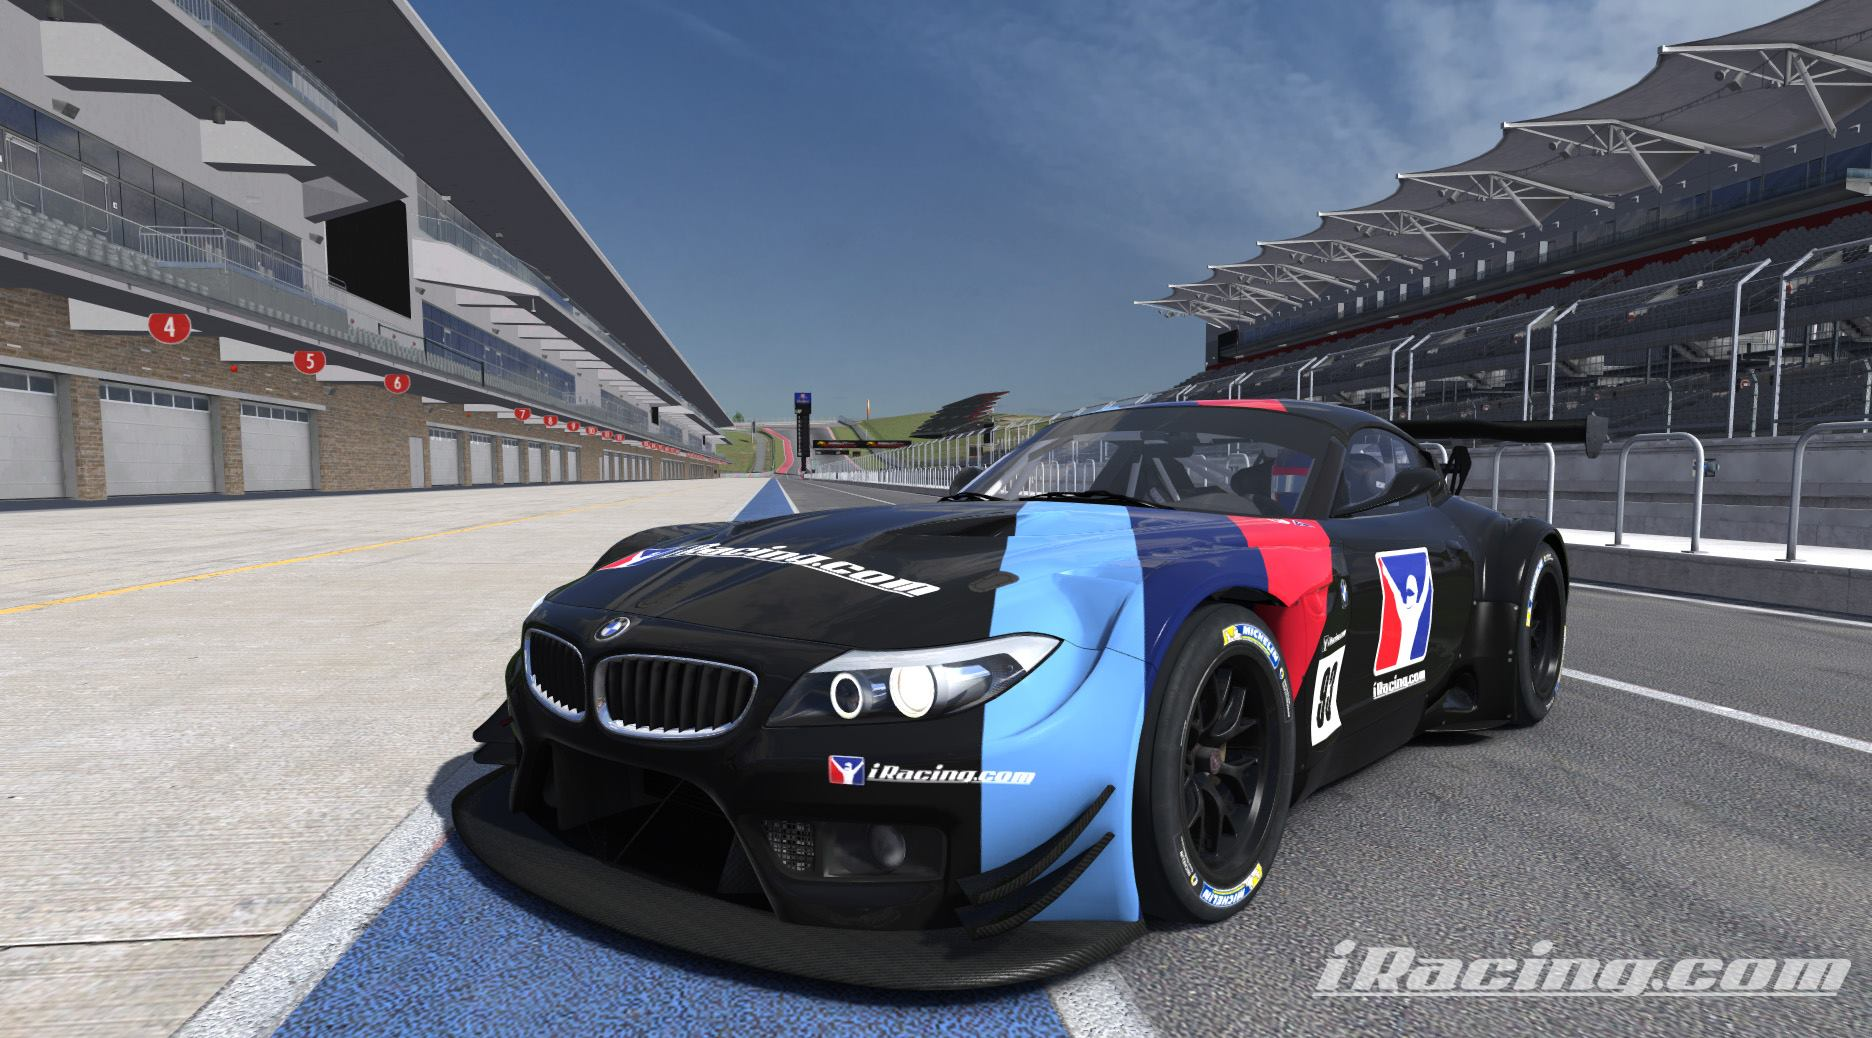 Iracing S Bmw Z4 Gt3 And Circuit Of The Americas Scheduled